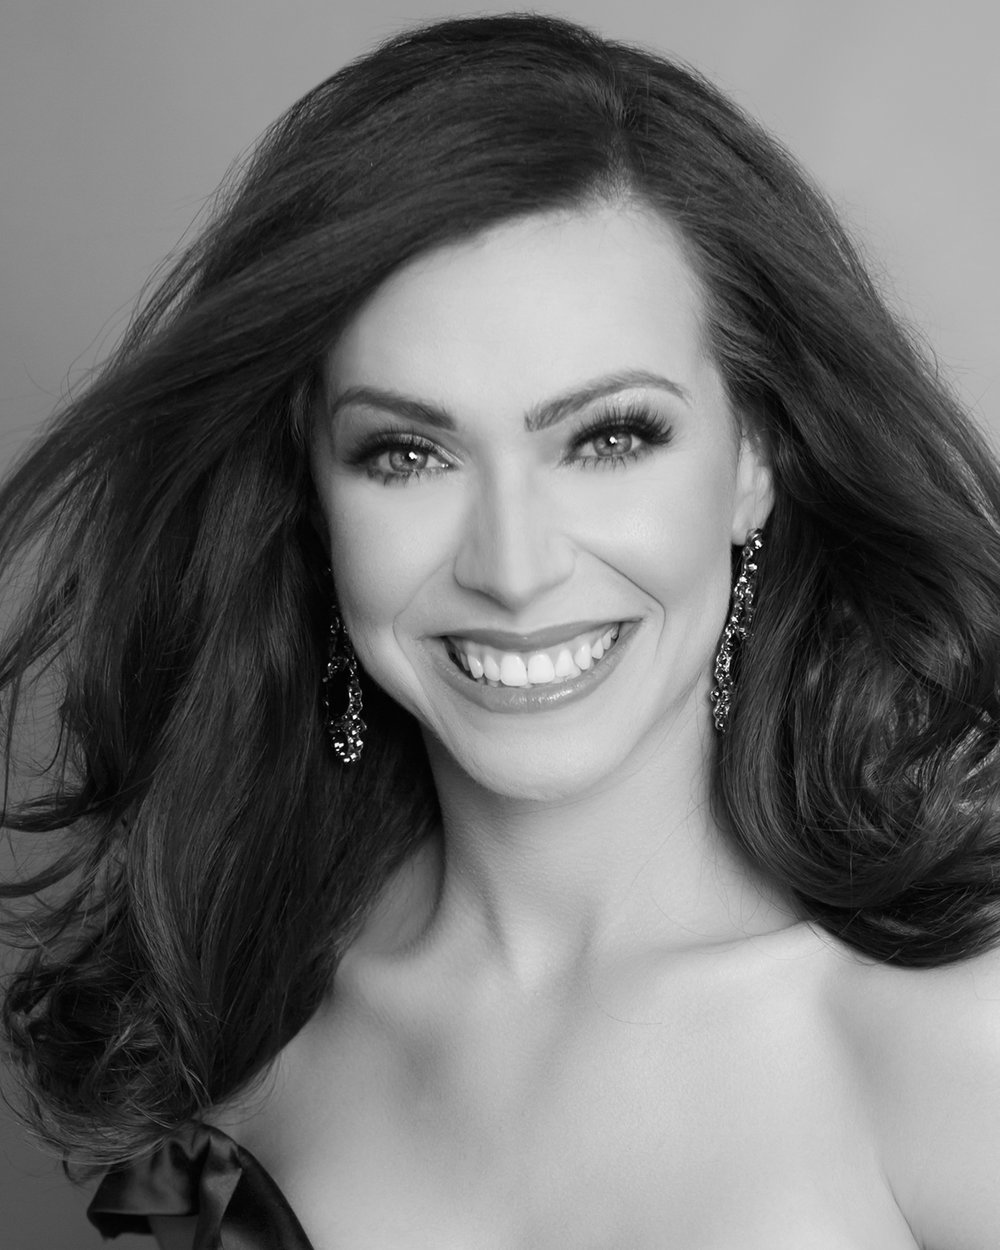 Taylor Lance  Miss Idaho 2017  Hometown: Boise  Talent: Singing